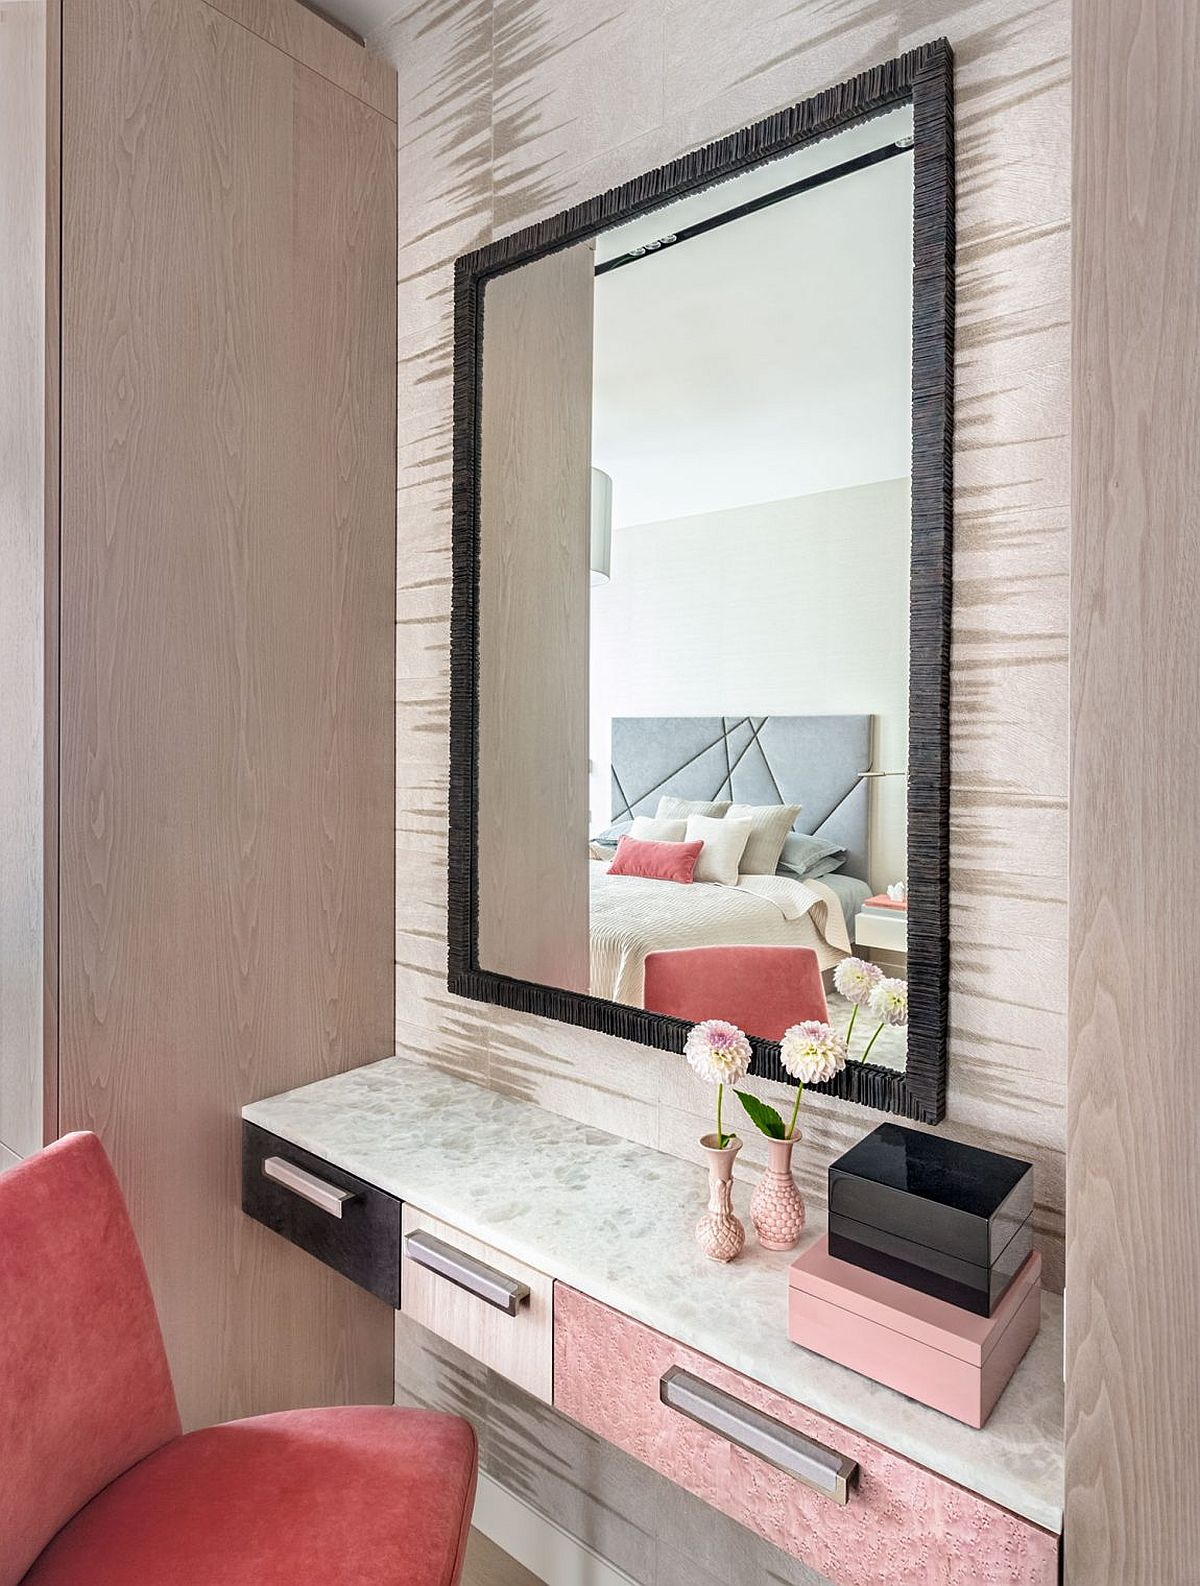 A touch of coral and pink invigorates the neutral setting